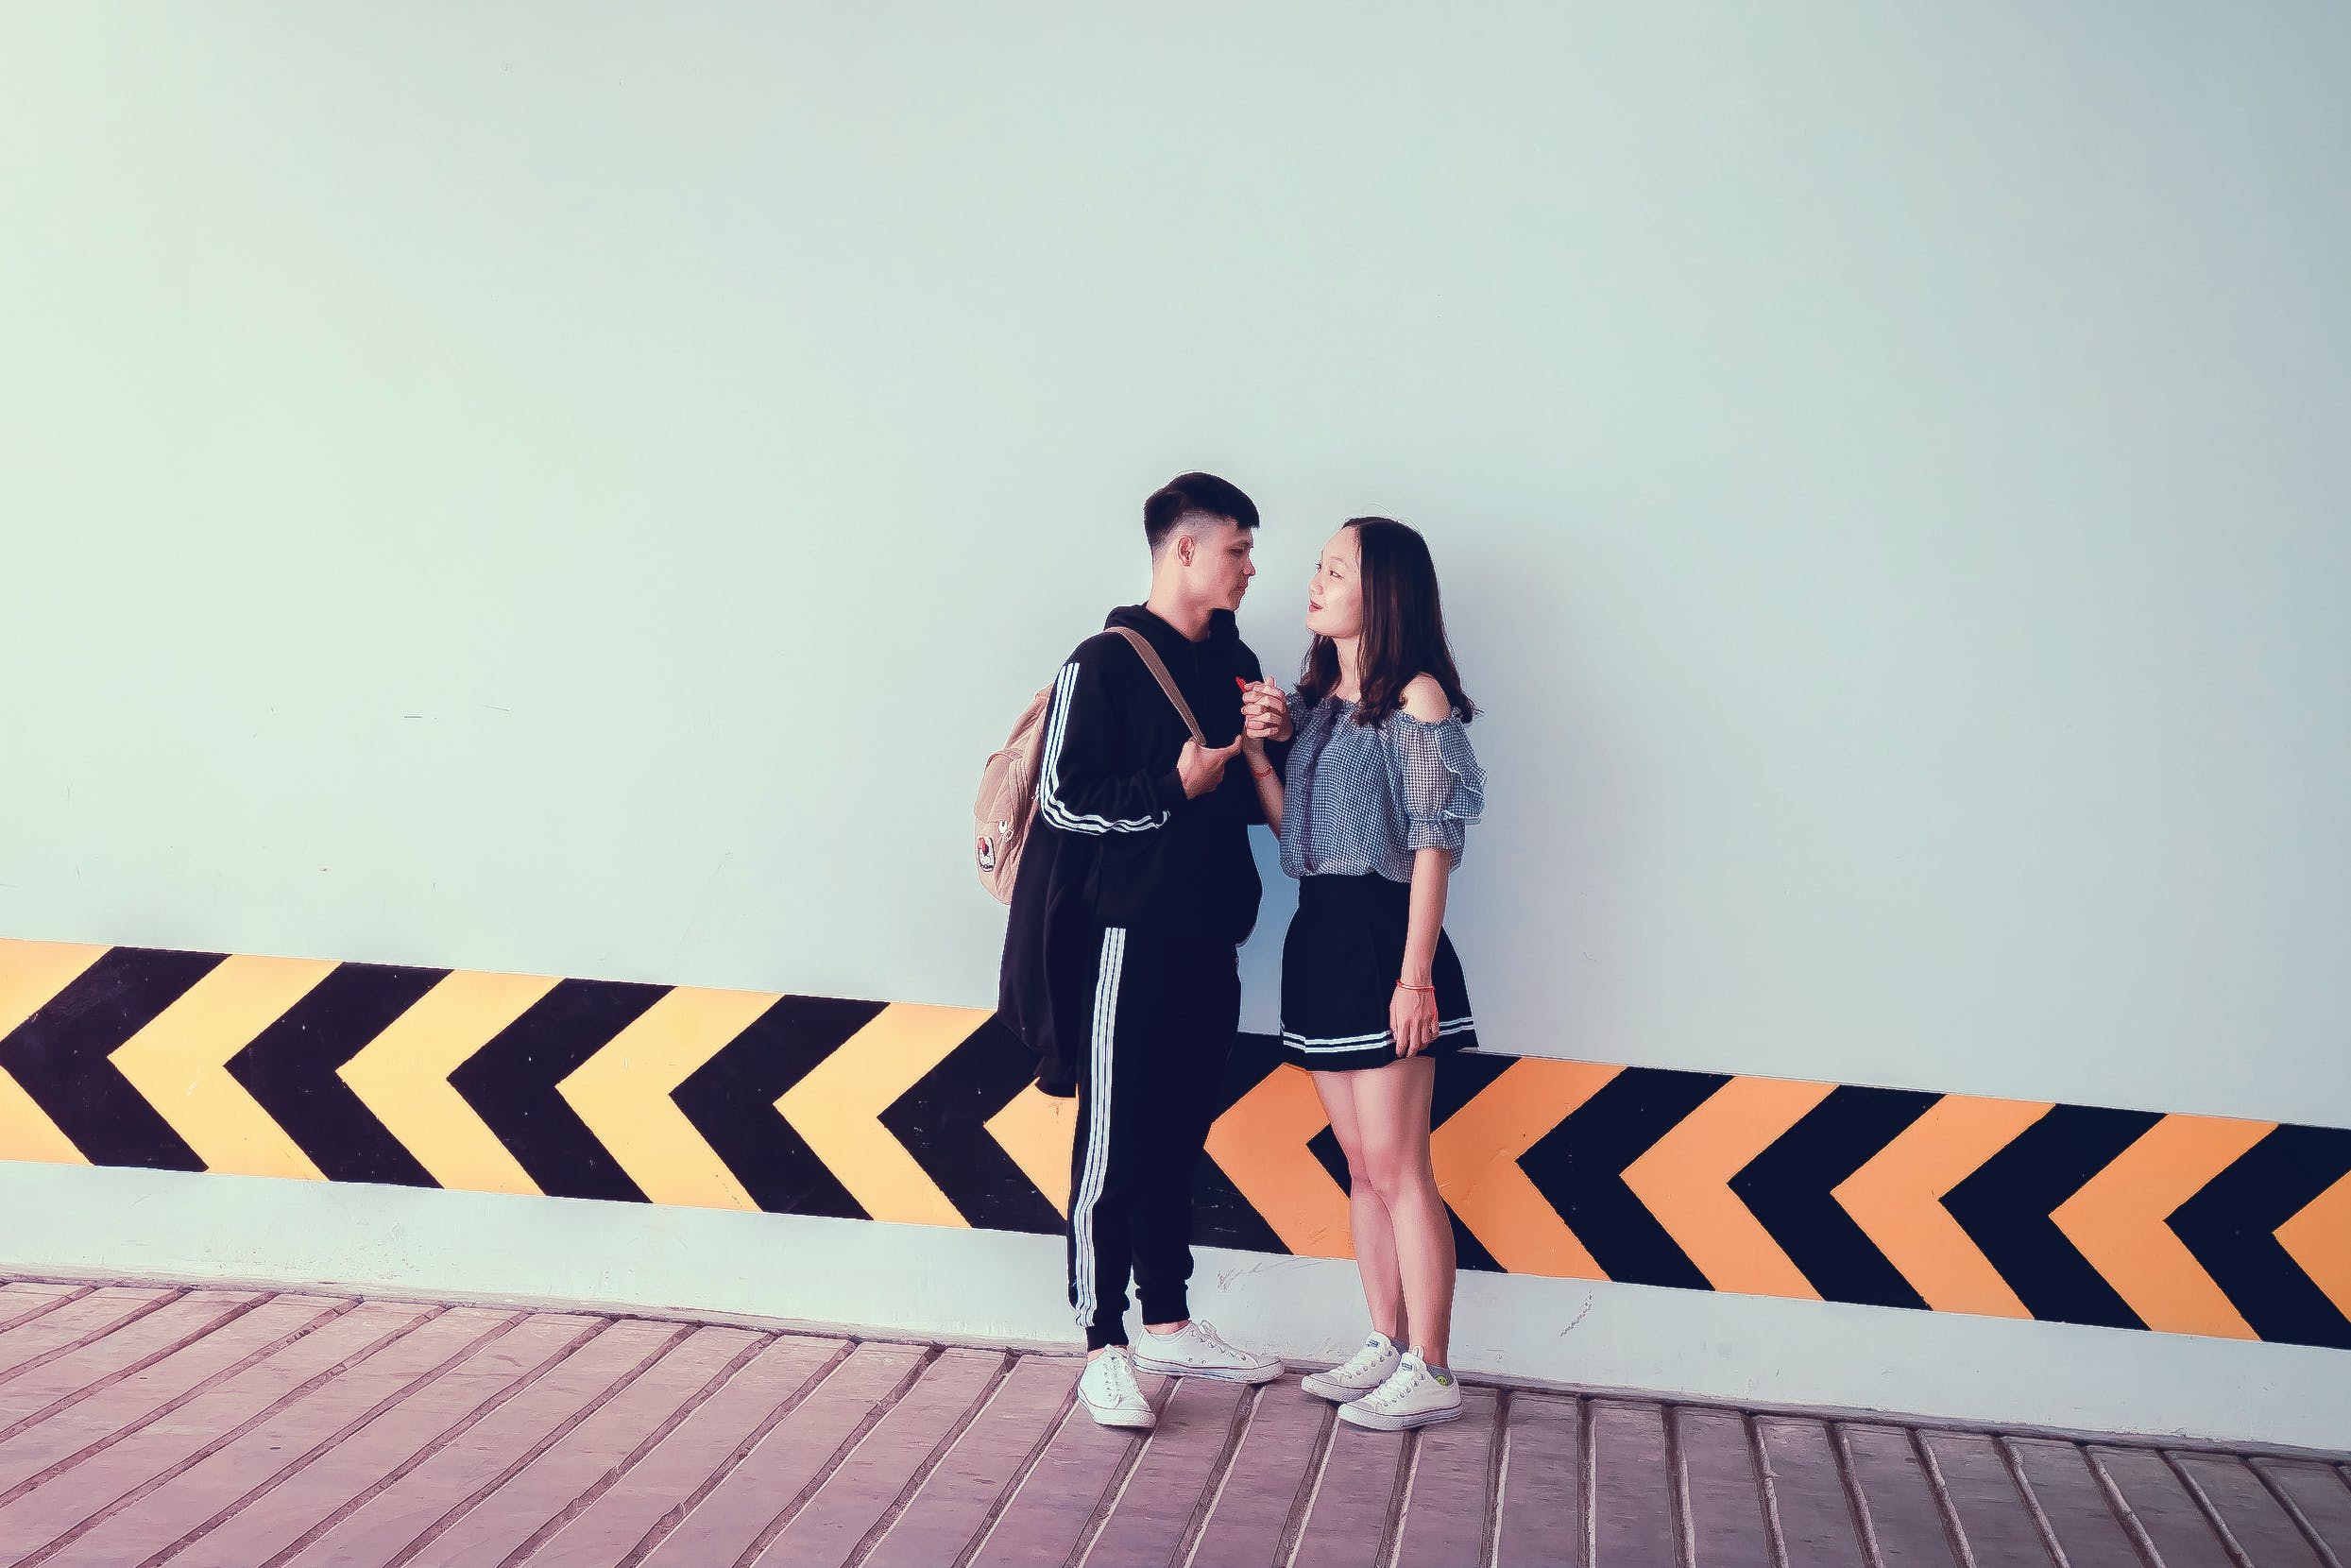 Man and Woman Looking at Each Other Near Wall